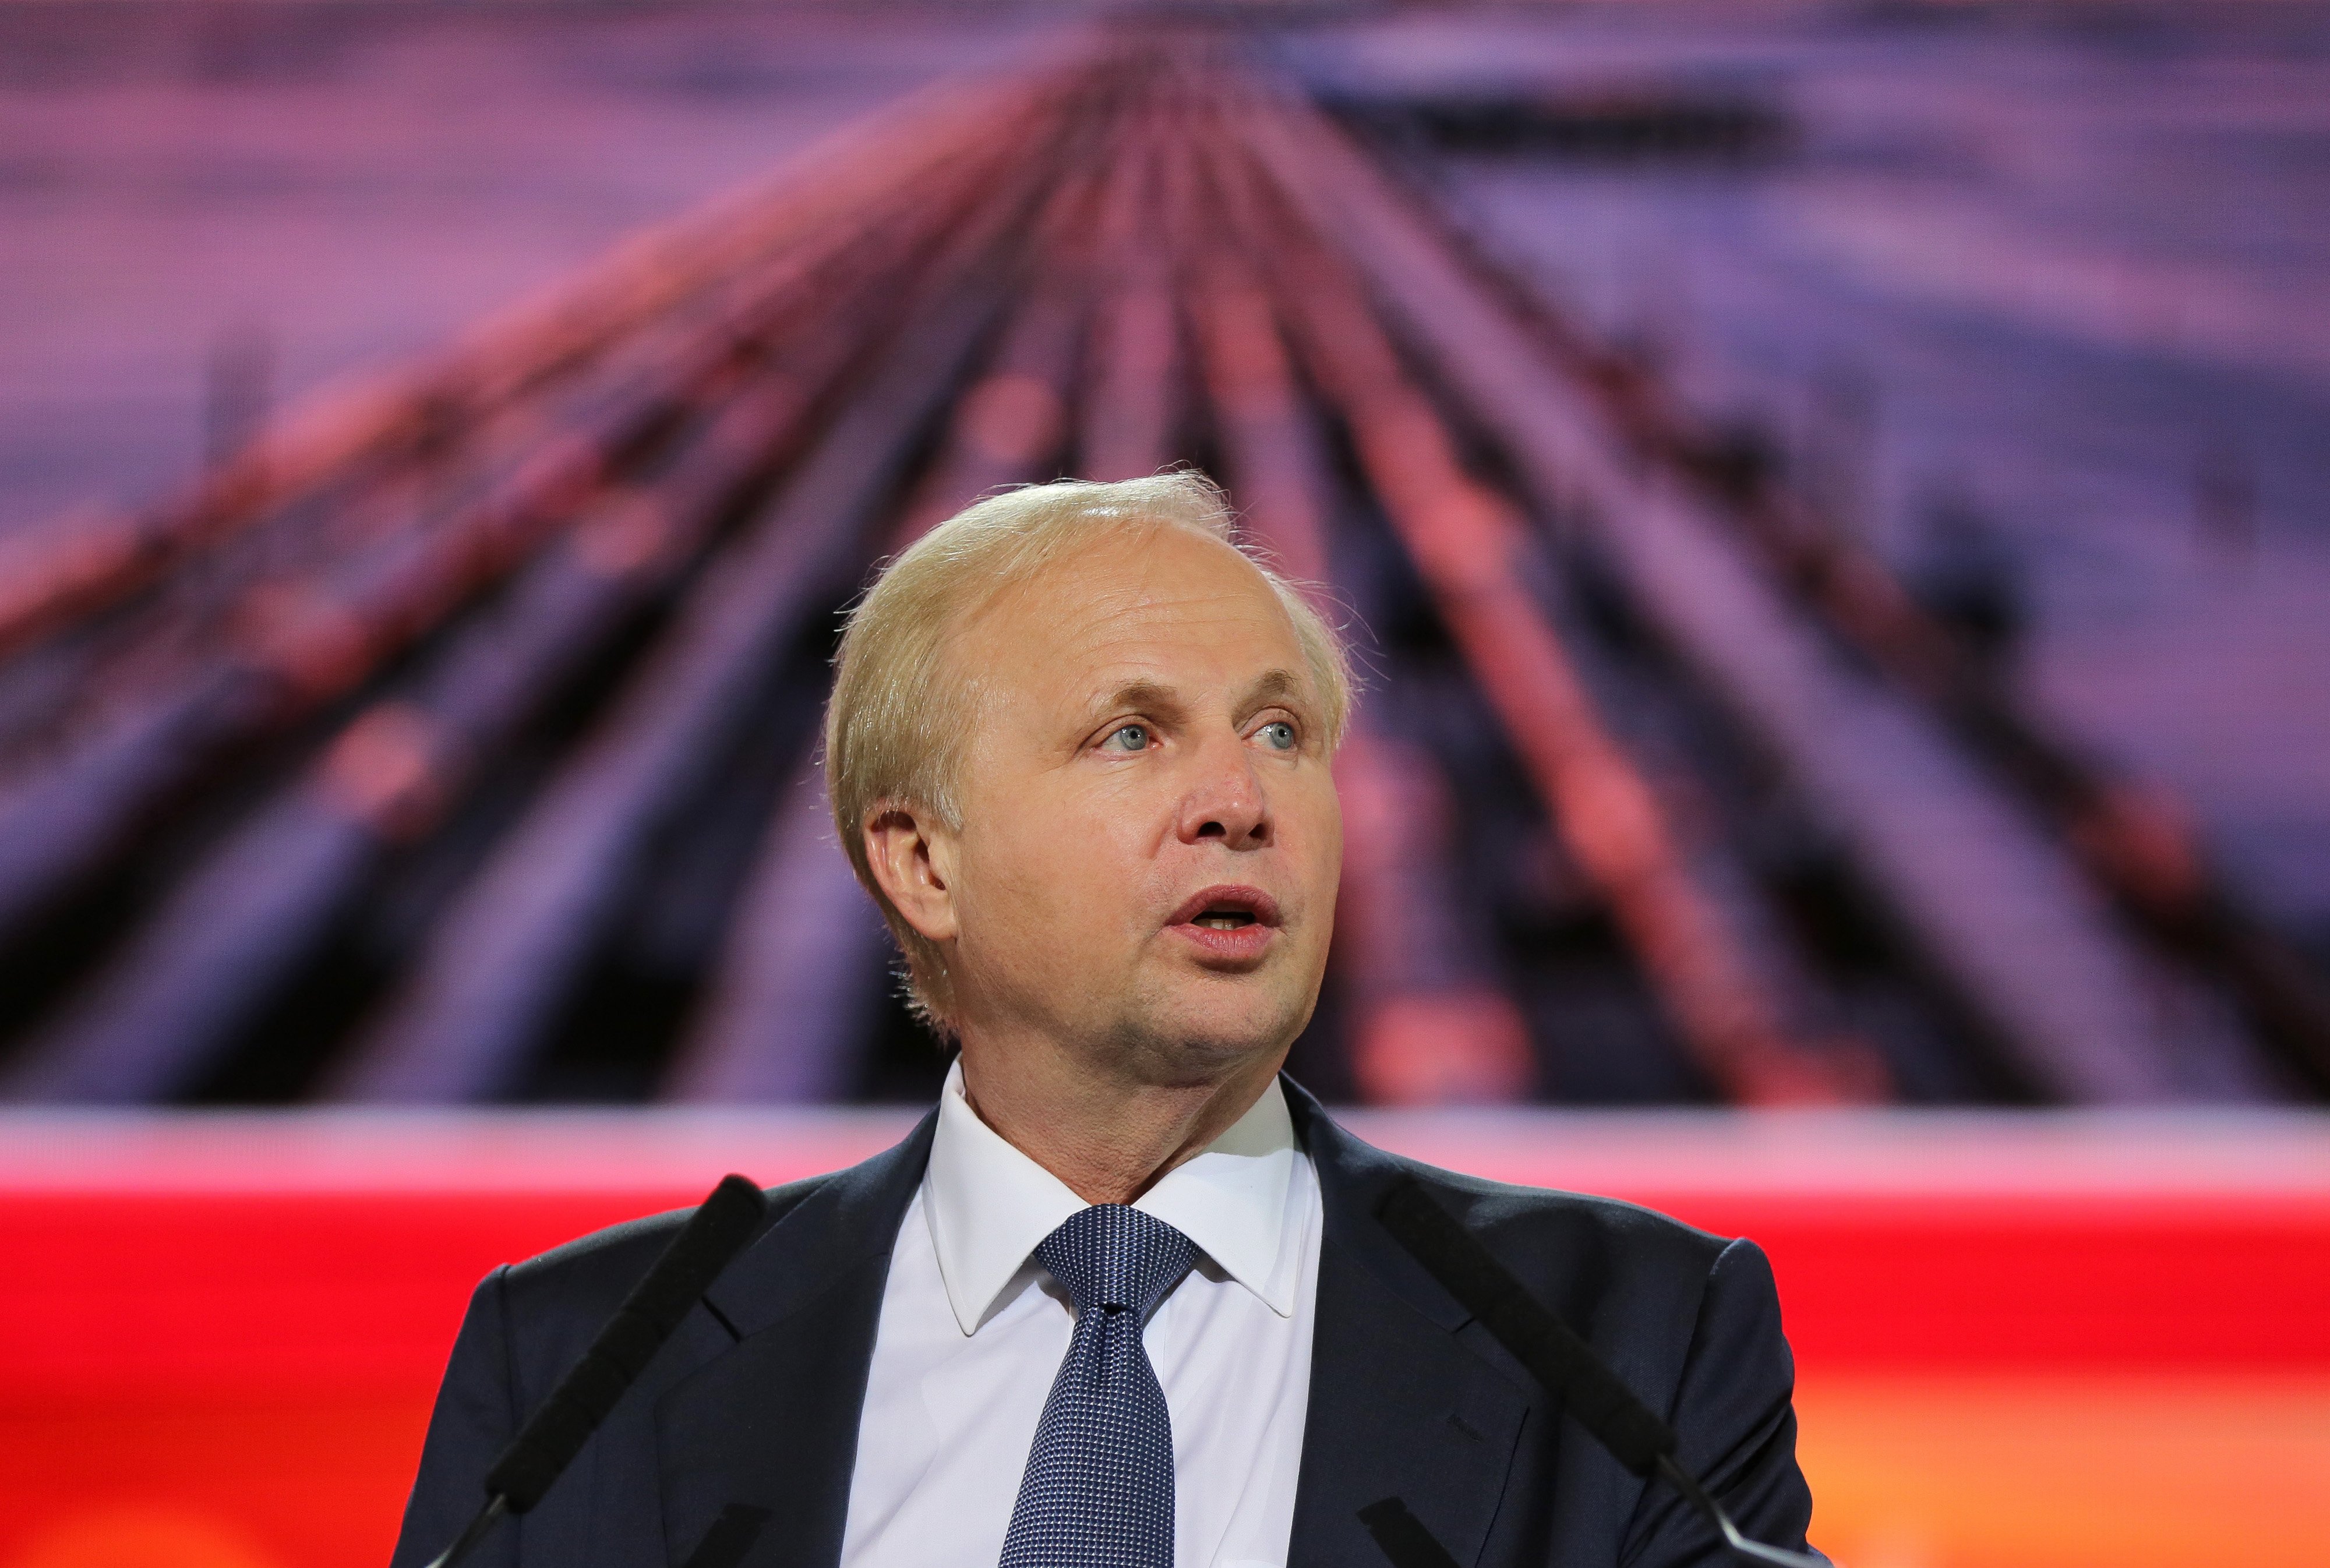 BP Plc Chief Executive Offficer Bob Dudley And Petroleum Industry Chiefs At The 21st World Petroleum Congress